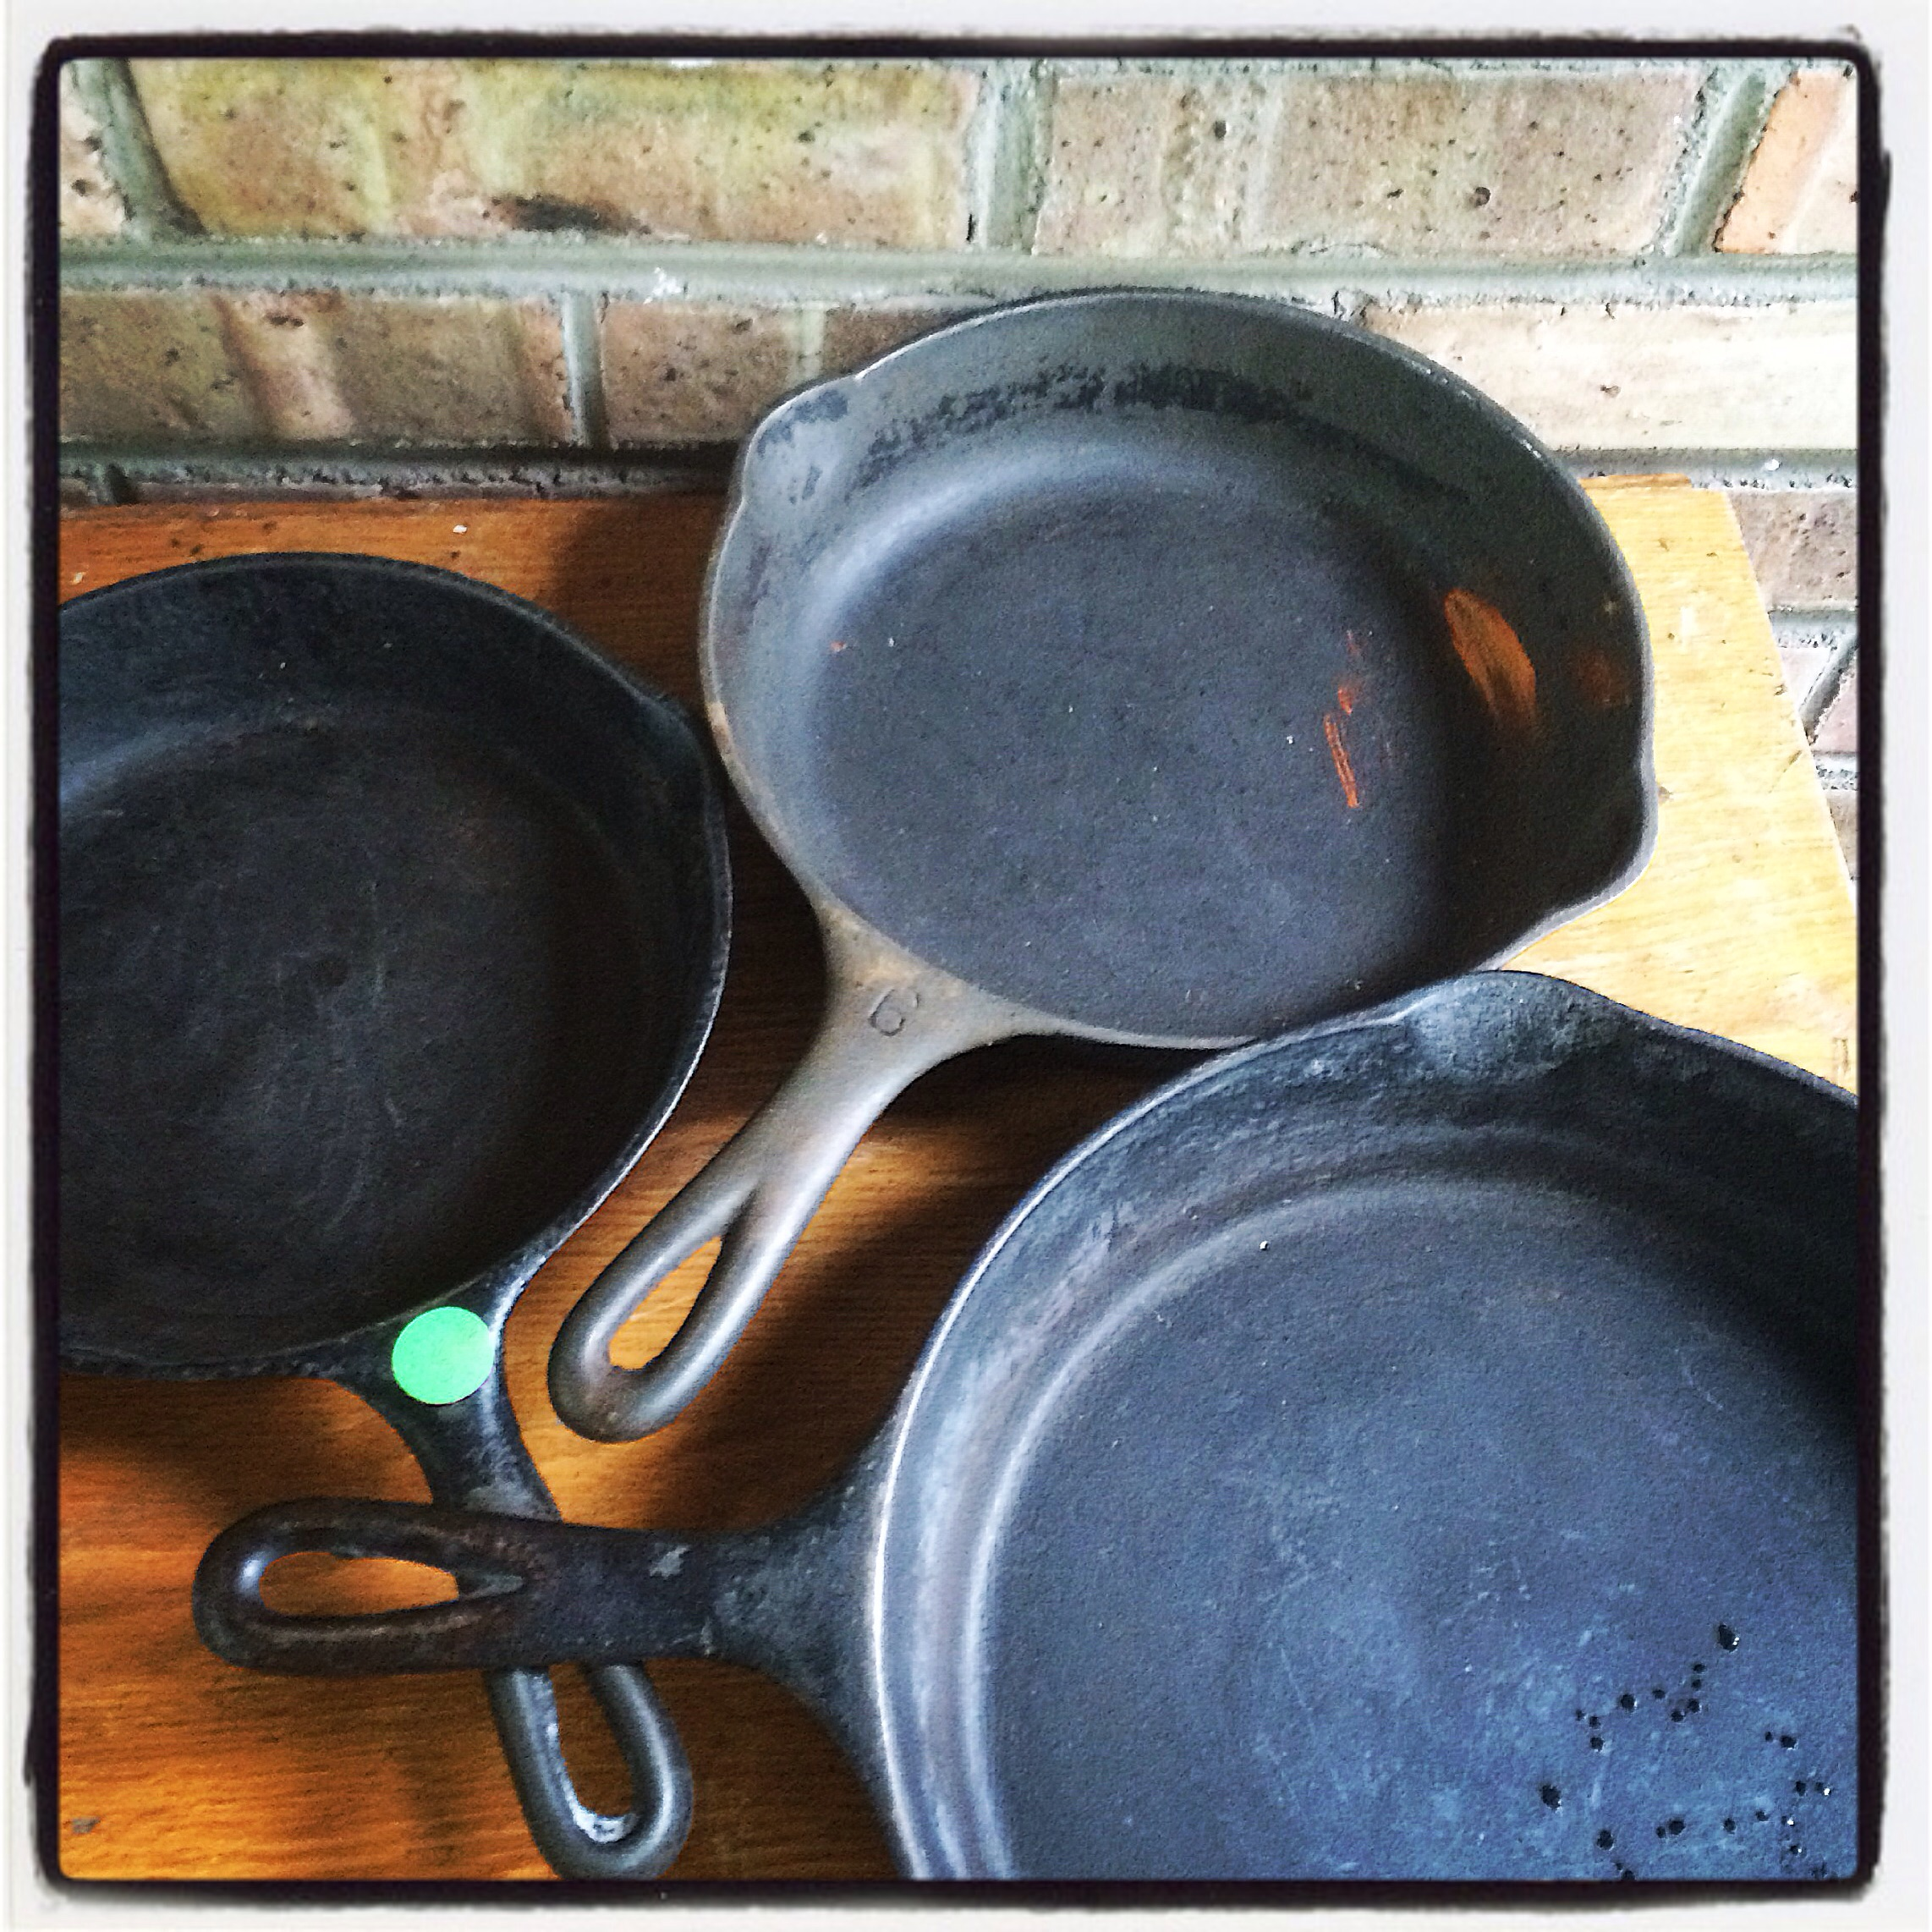 Flea Market Finds for The Big Green Egg